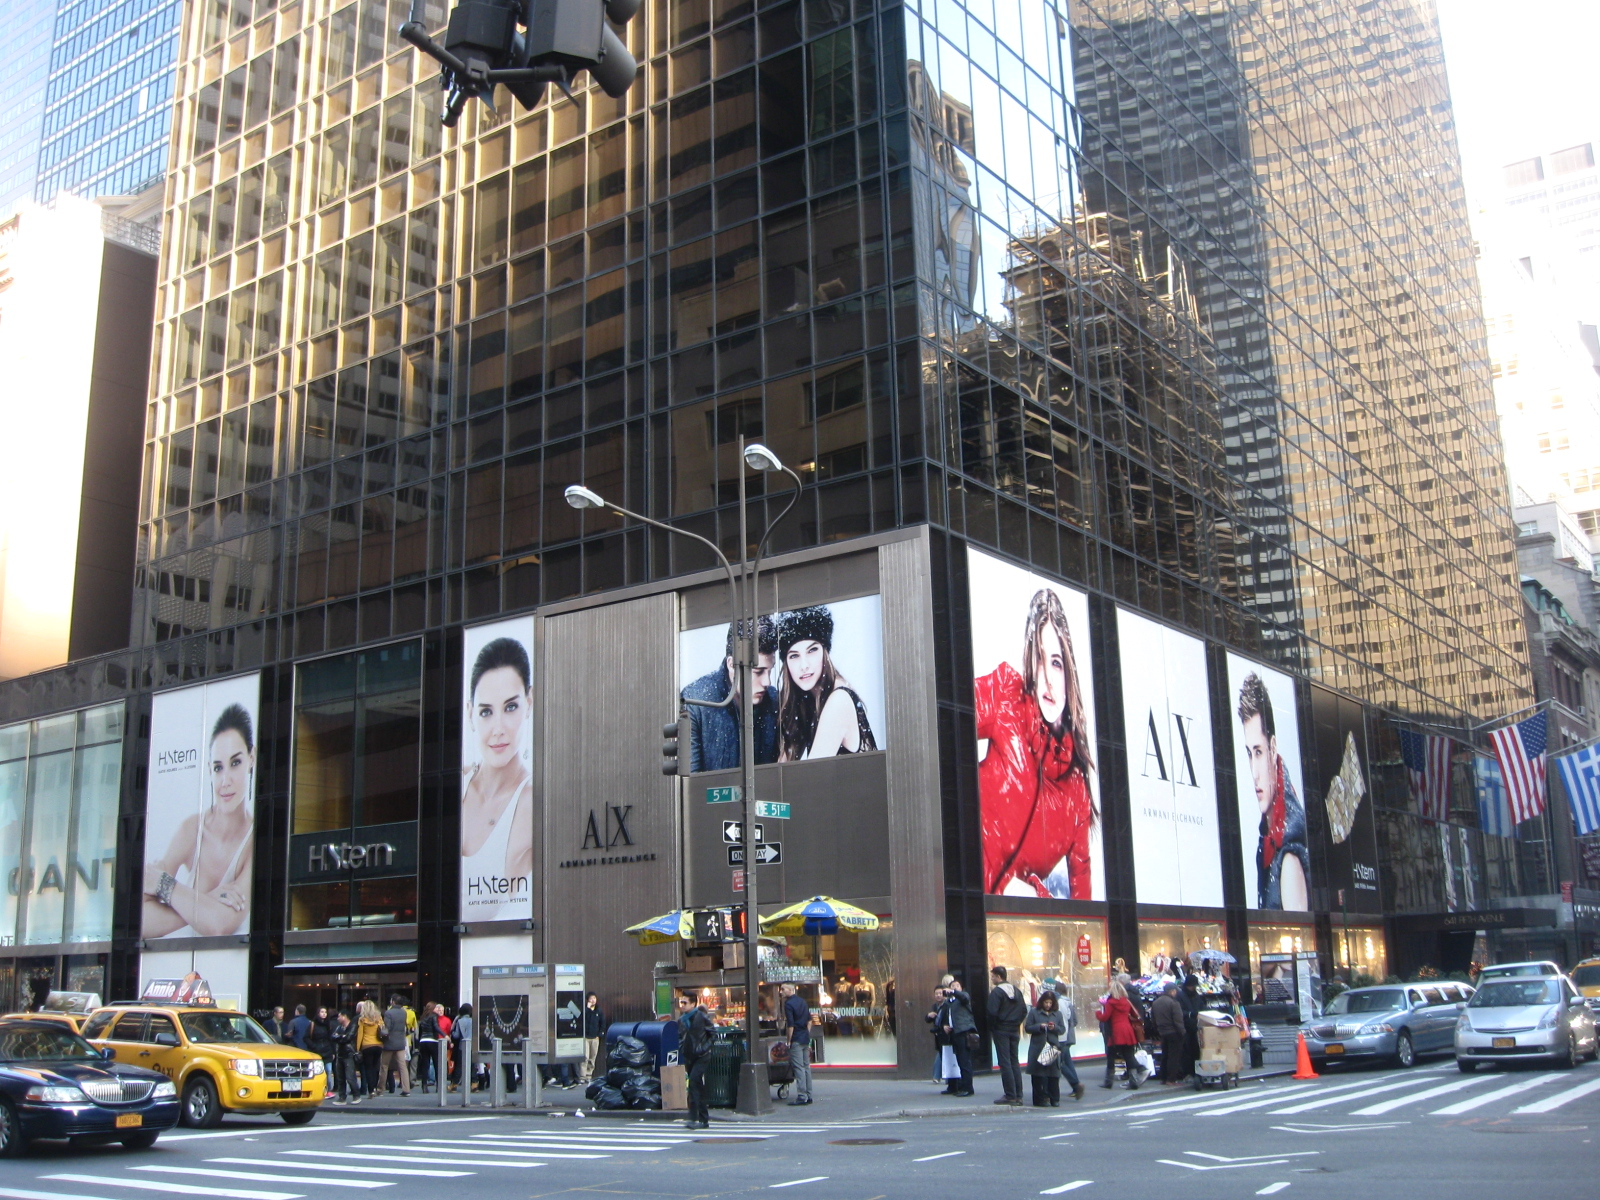 One of the most luxurious stretches of retail in the country, Fifth Avenue is the main artery of New York City's shopping scene, having welcomed a steady stream of fashion mavens for over years.